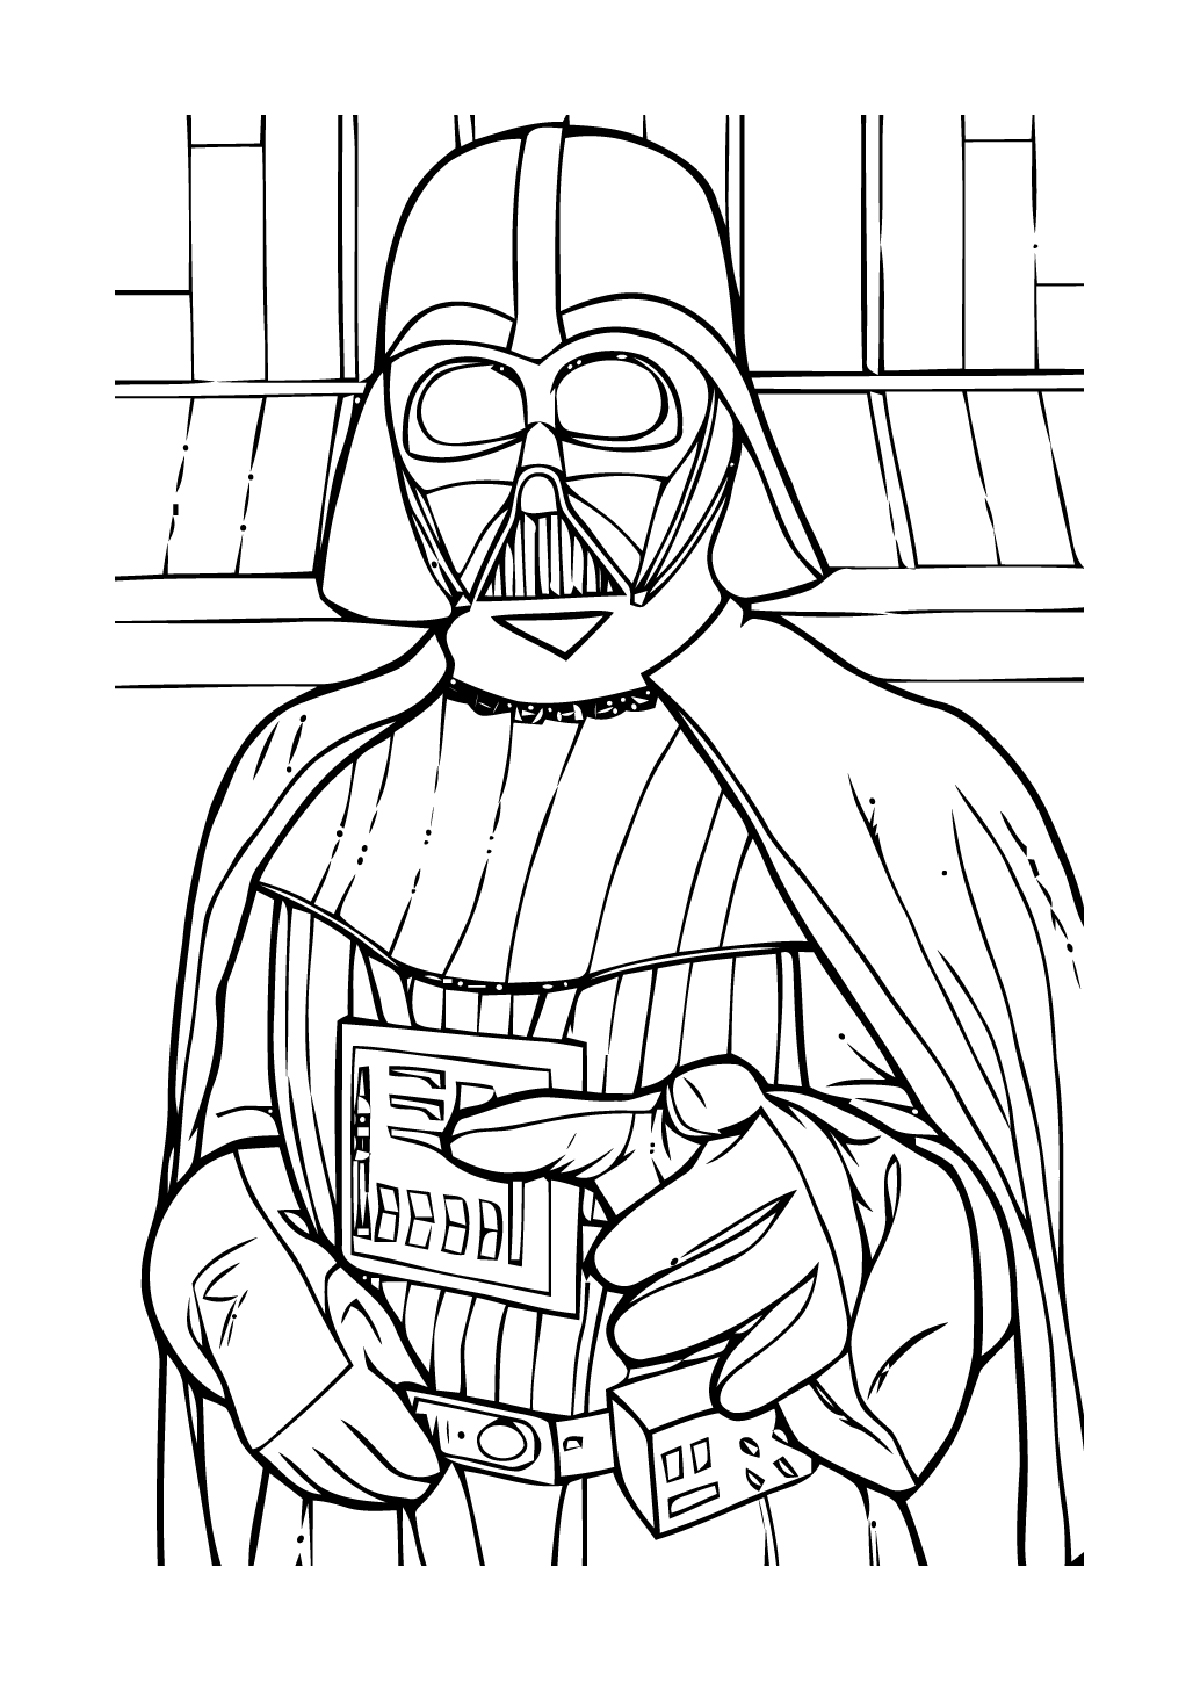 star wars coloring pictures star wars stormtrooper coloring pages printable coloring star pictures coloring wars